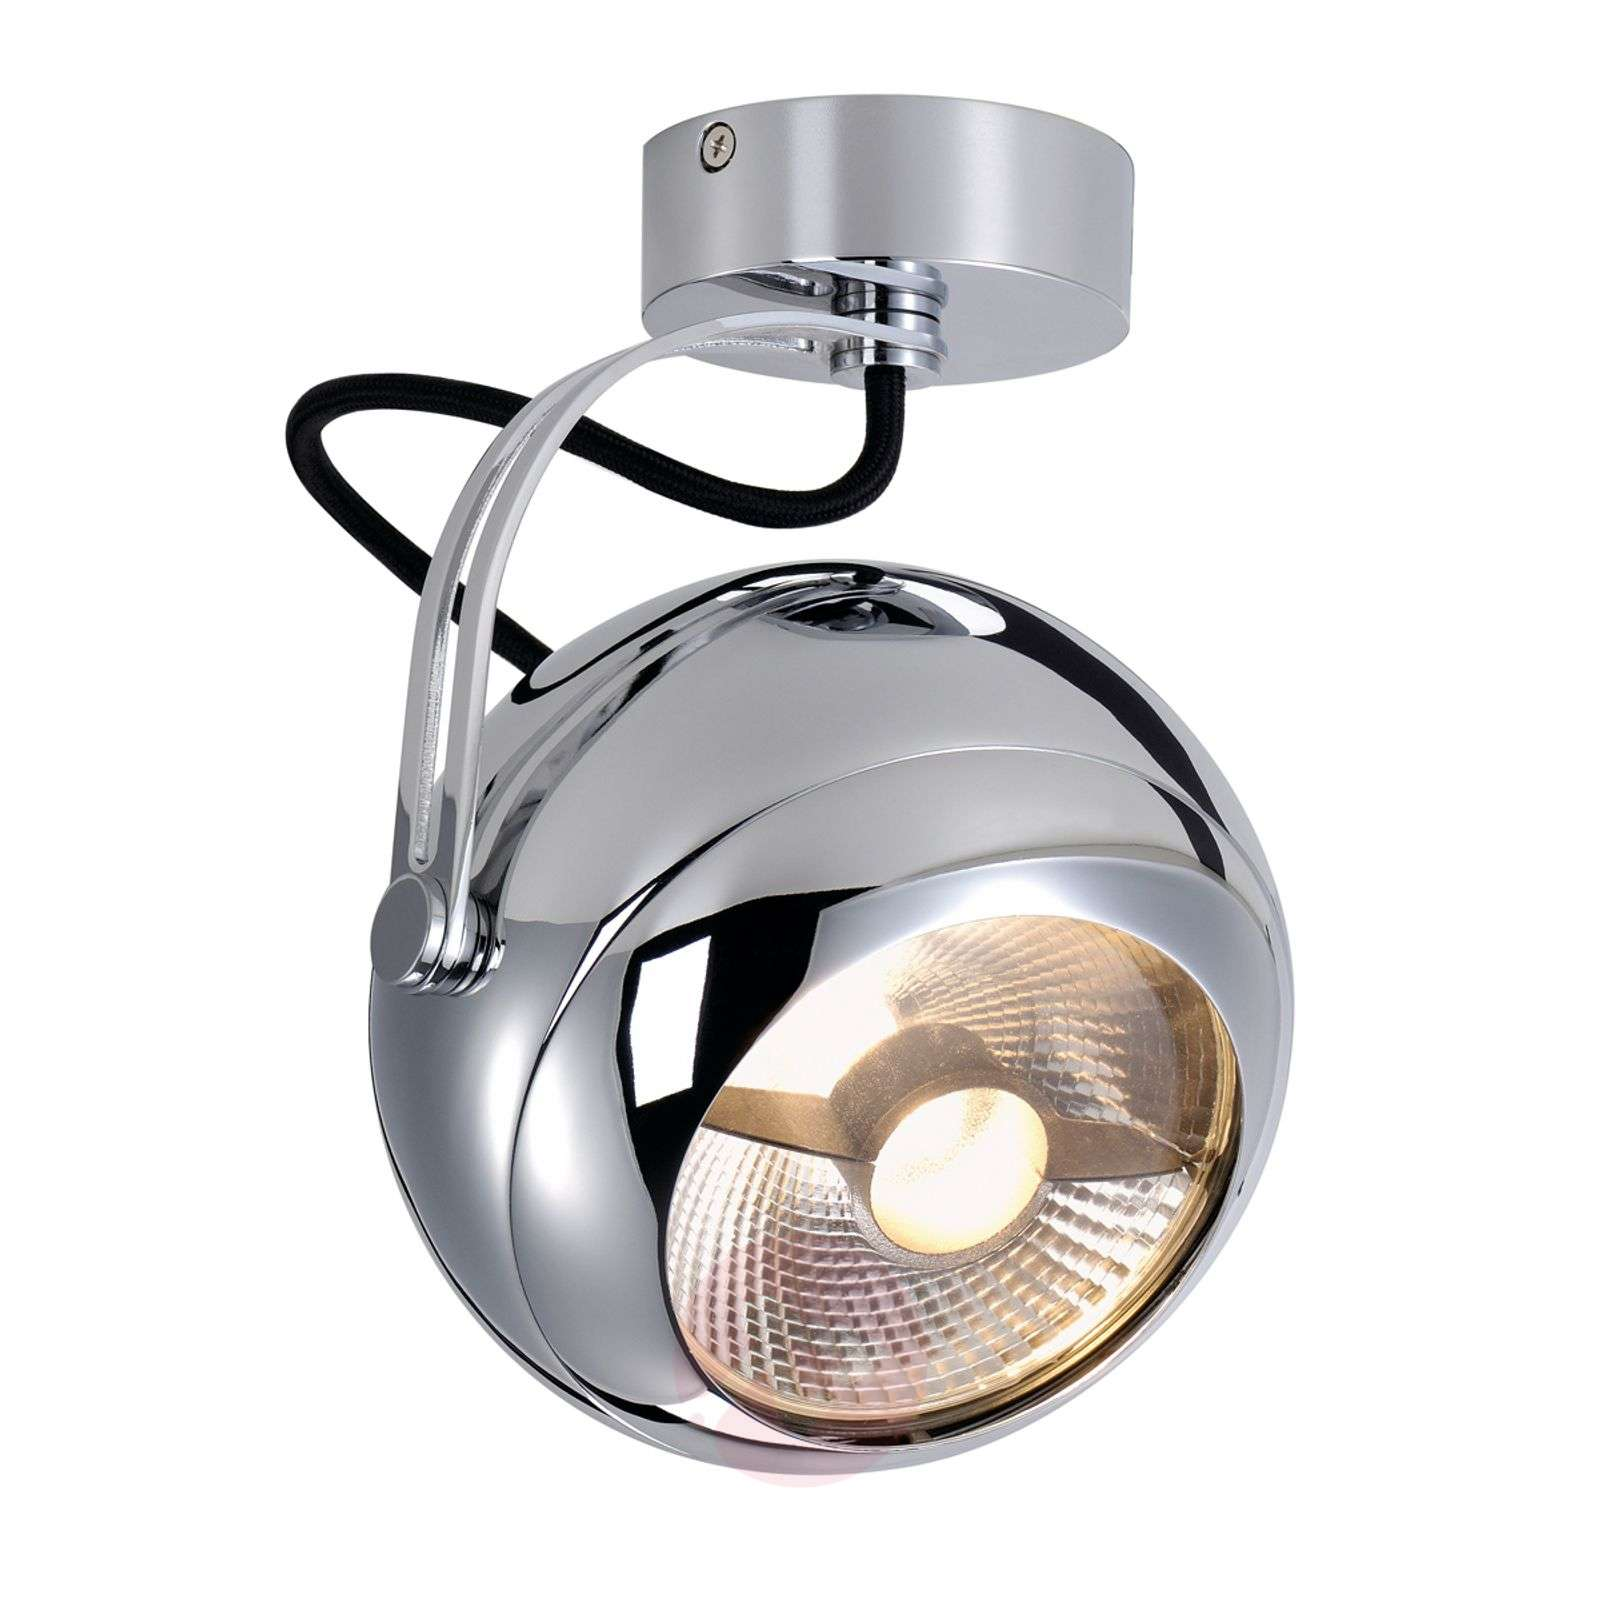 Plafondlamp LIGHT EYE-5502078-01